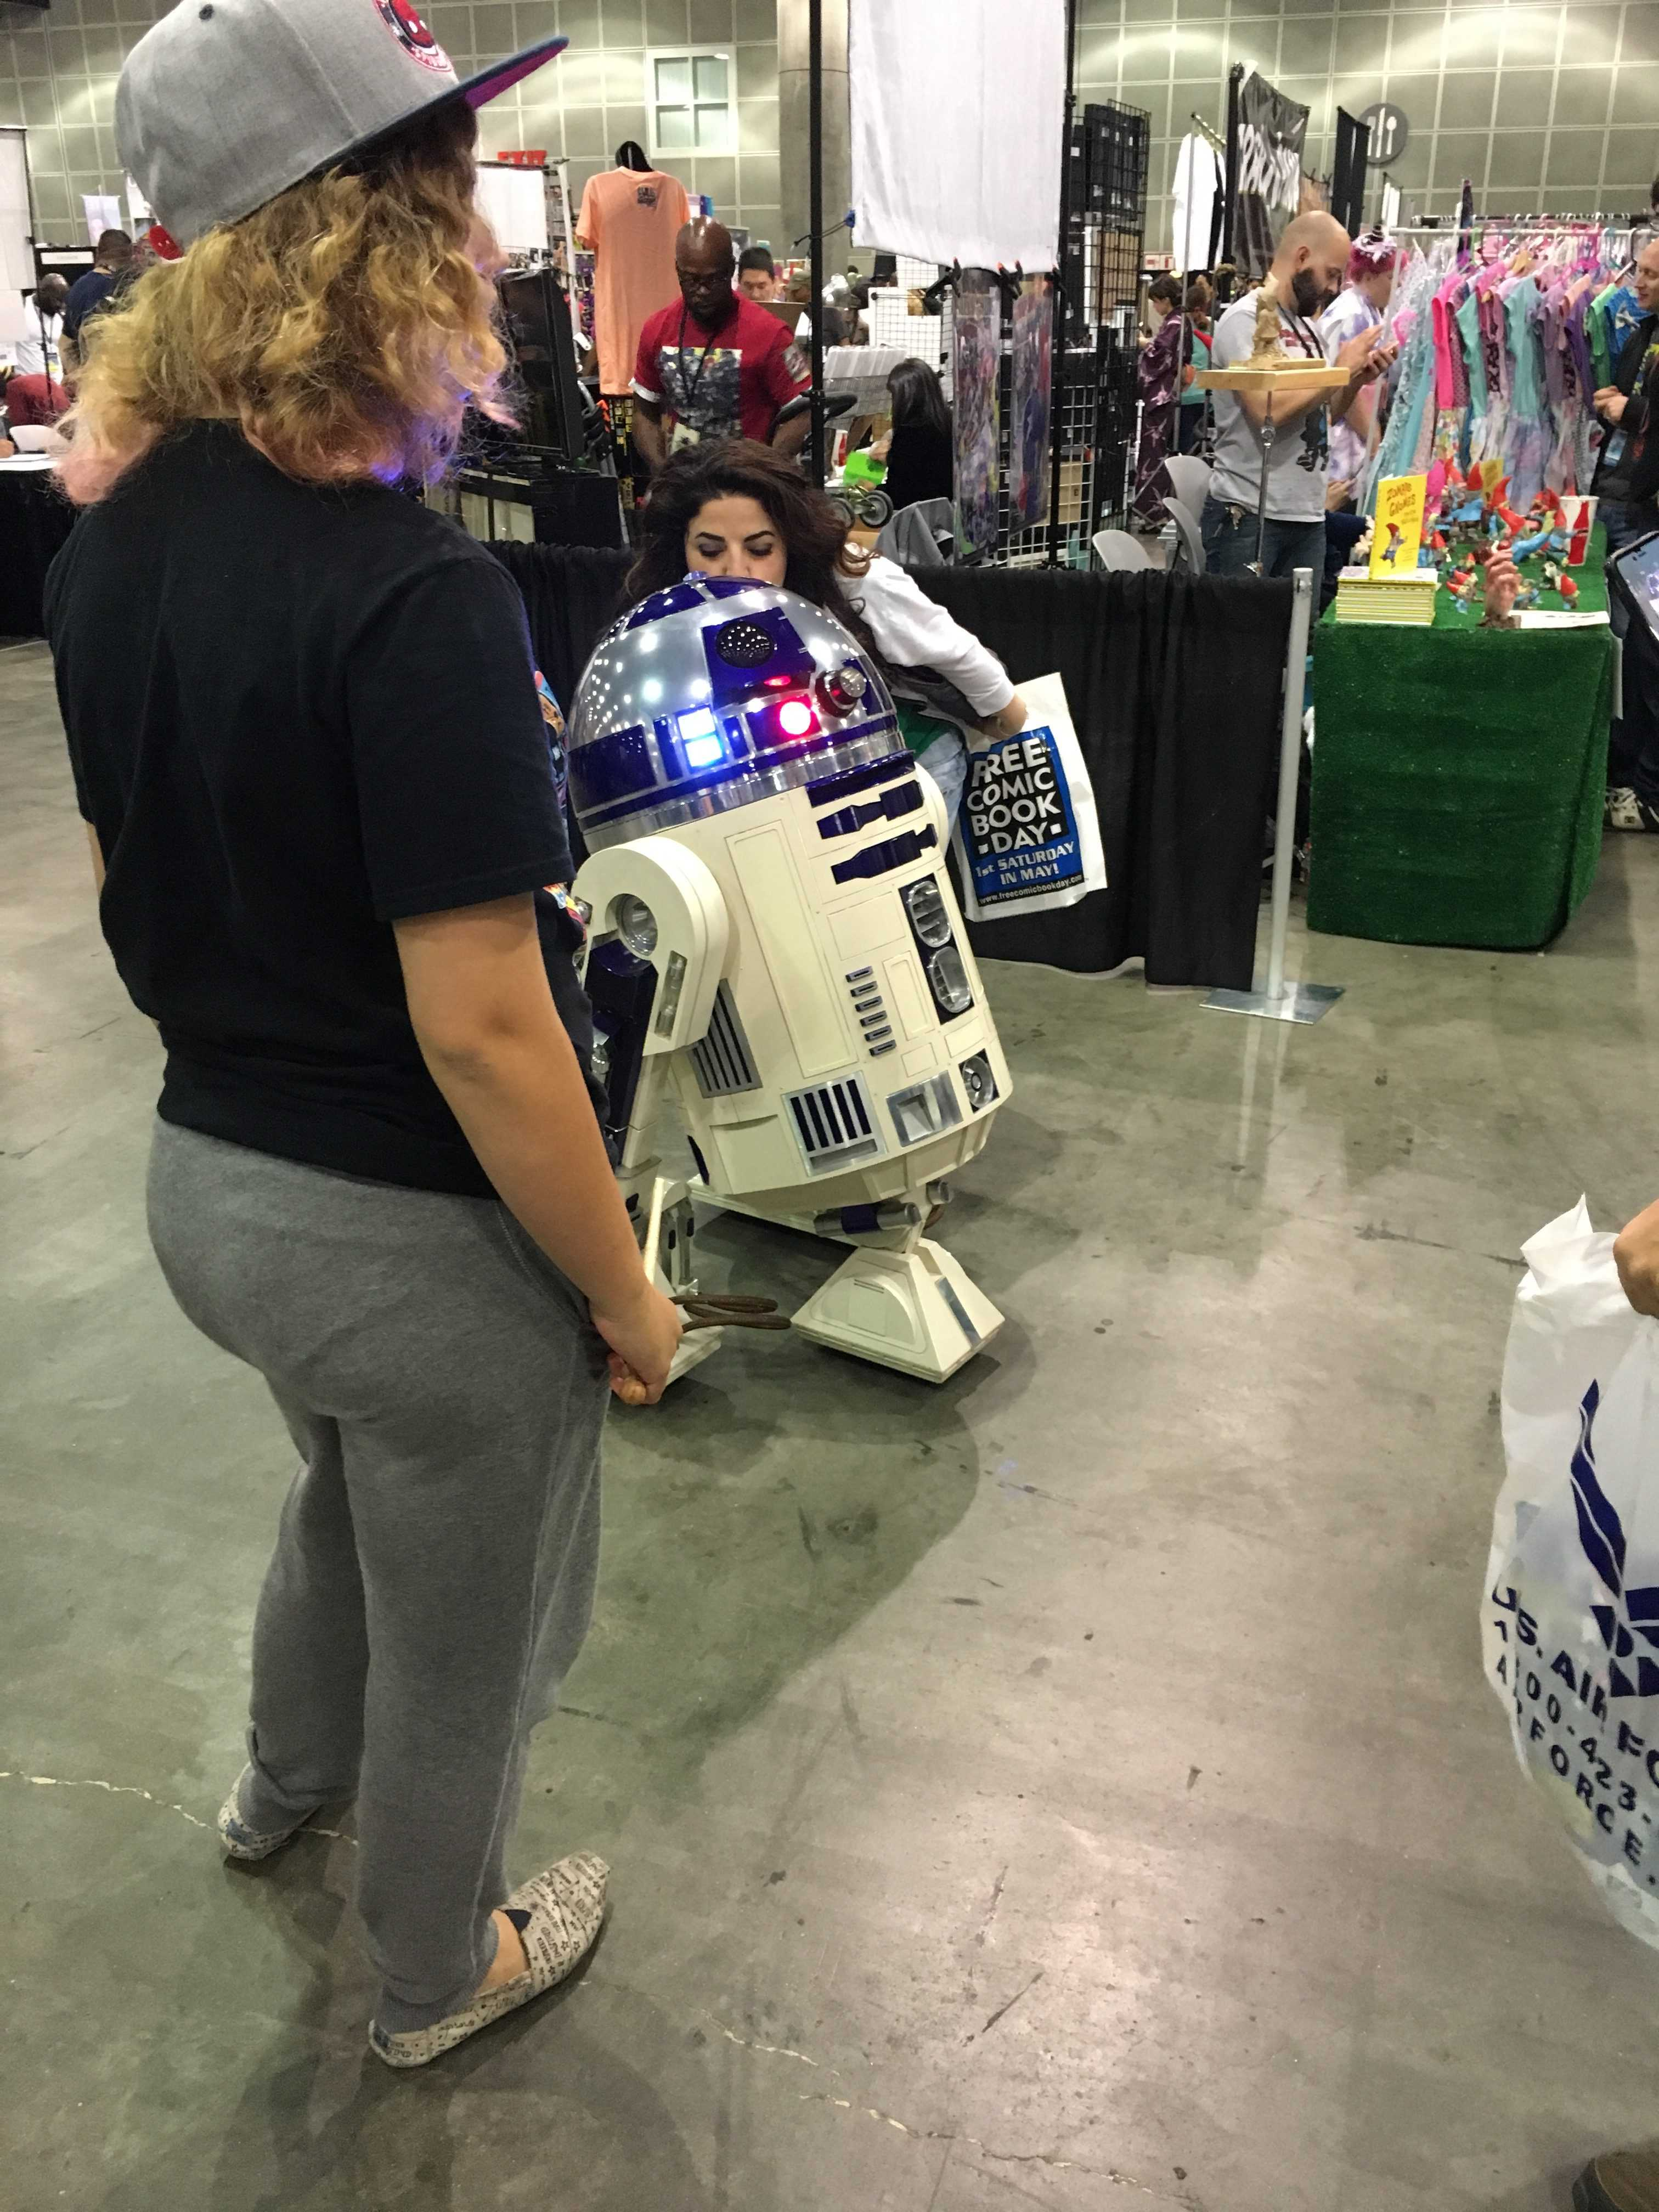 R2D2 is shown at comic con